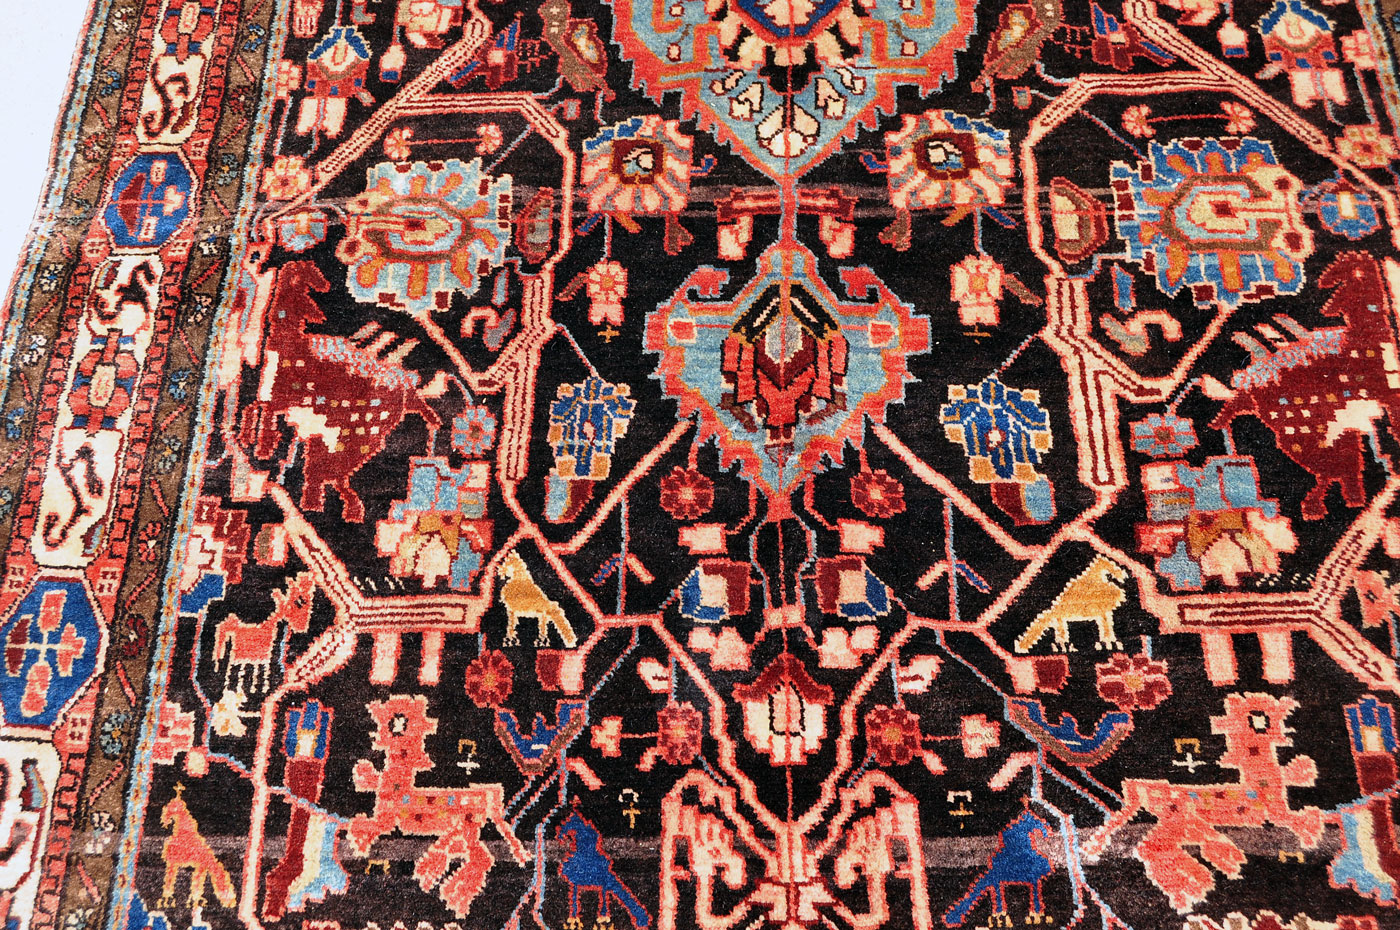 Tribal Rug with Lions